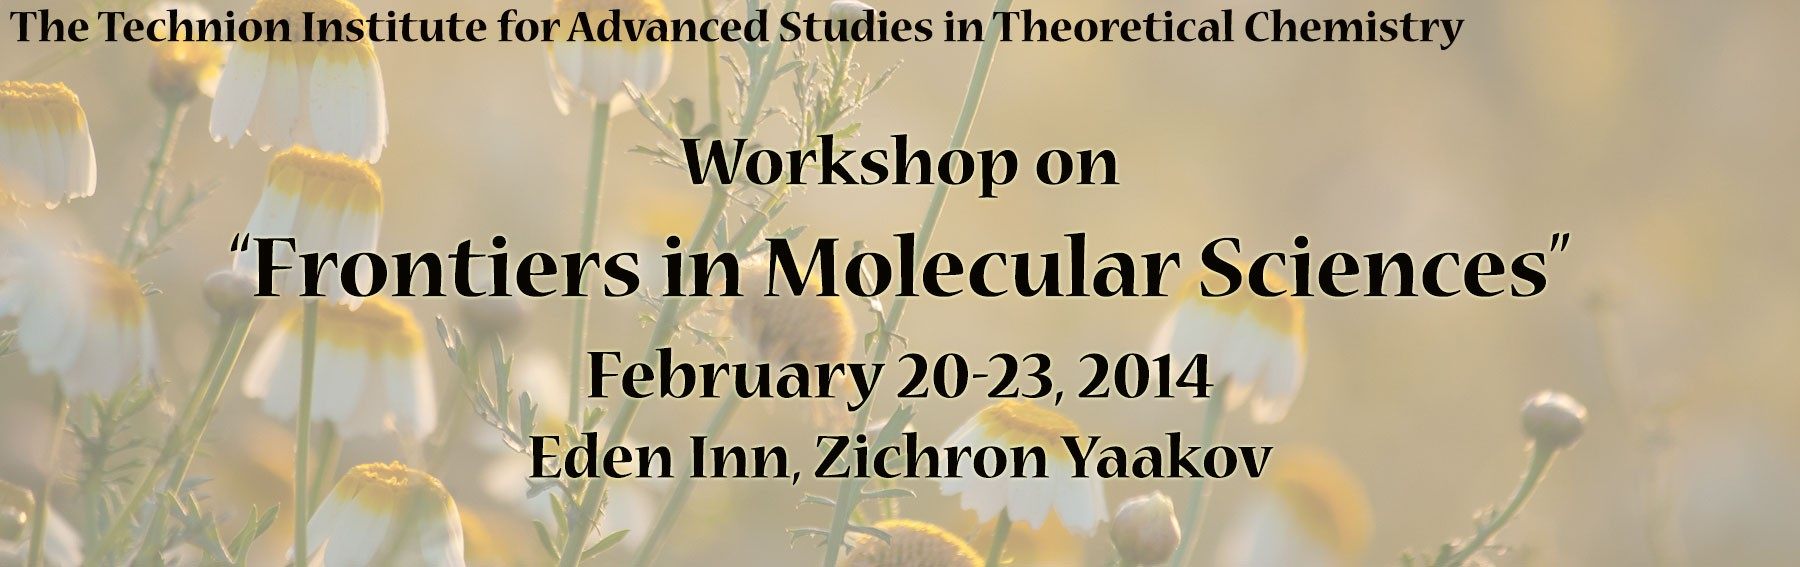 frontiers_in_molecular_sciences_2014